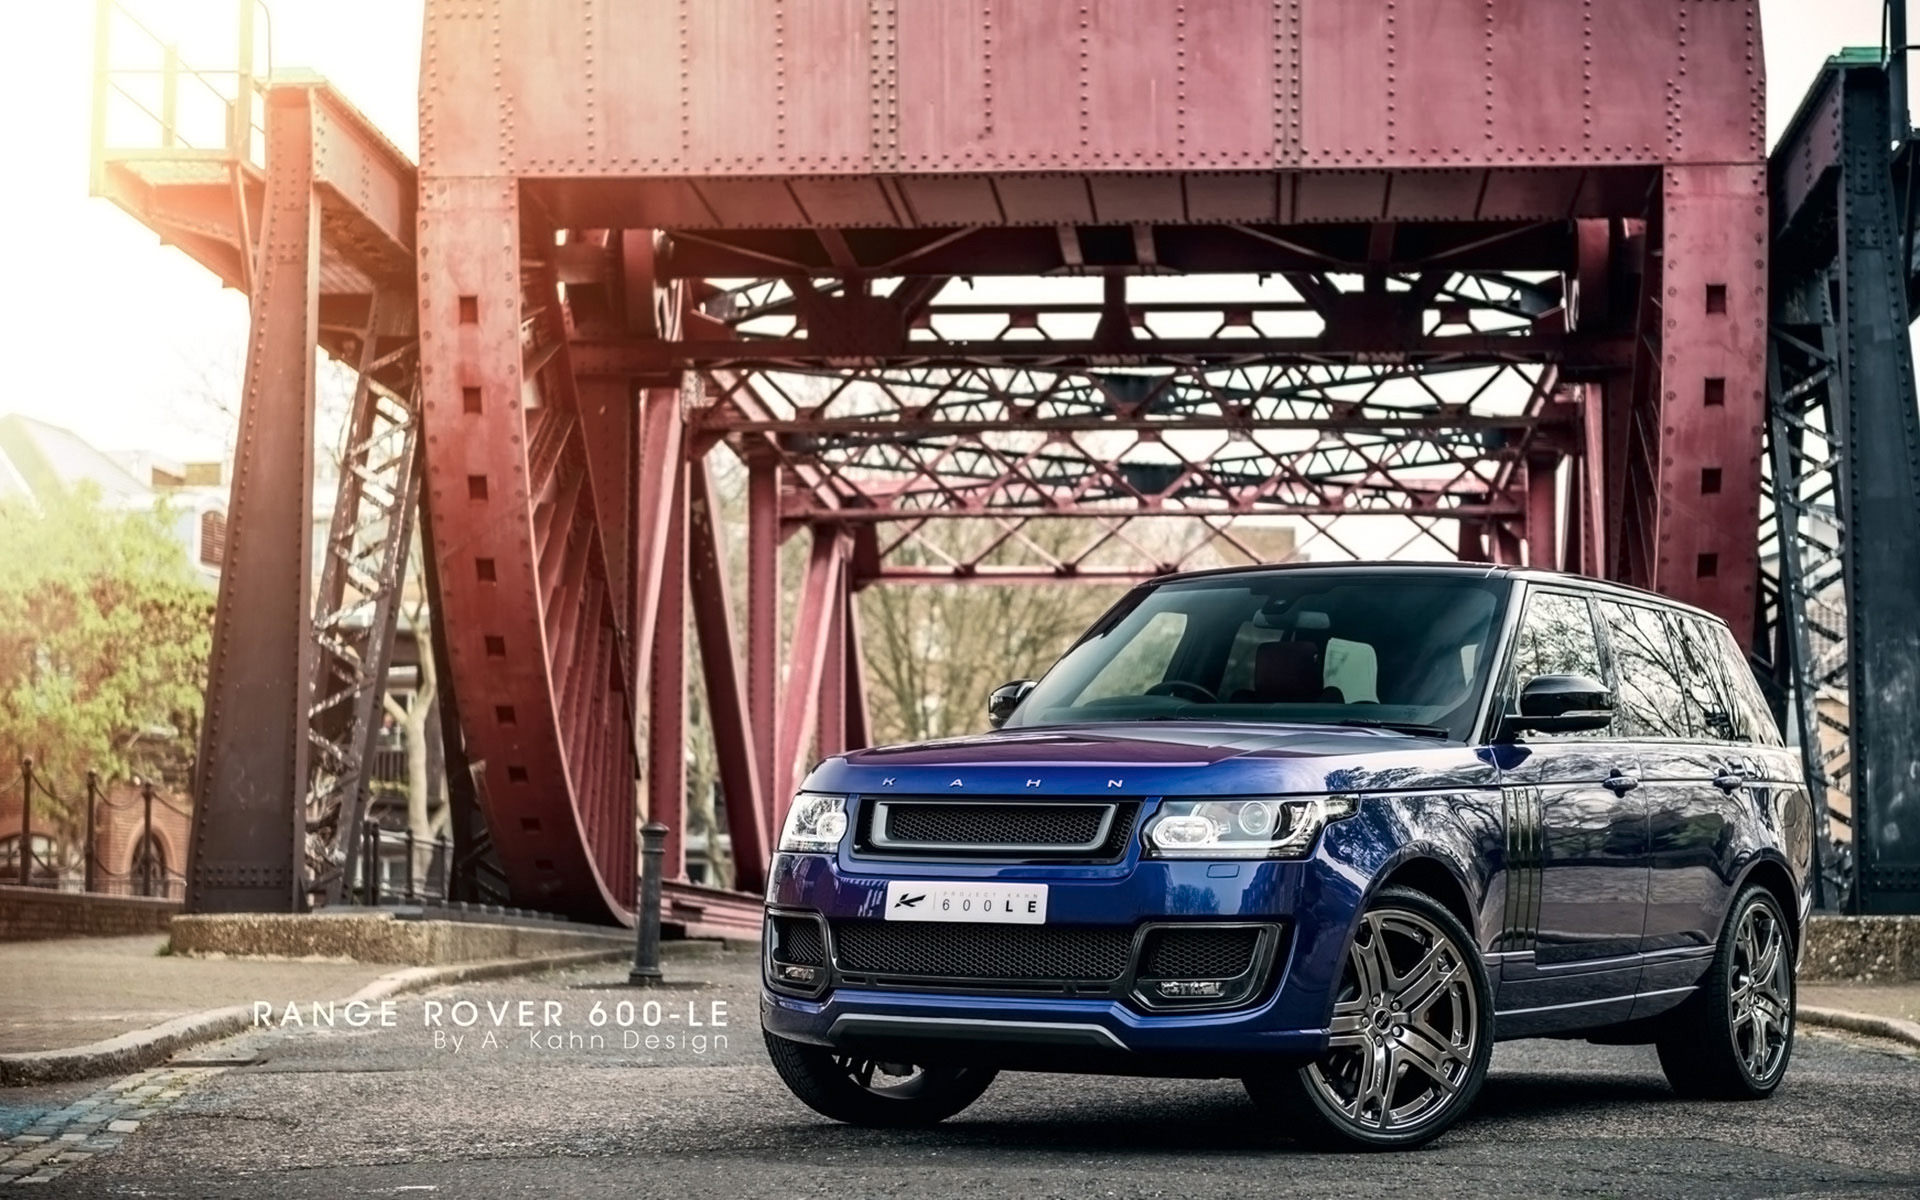 Range Rover Vogue 600le Hd Cars 4k Wallpapers Images